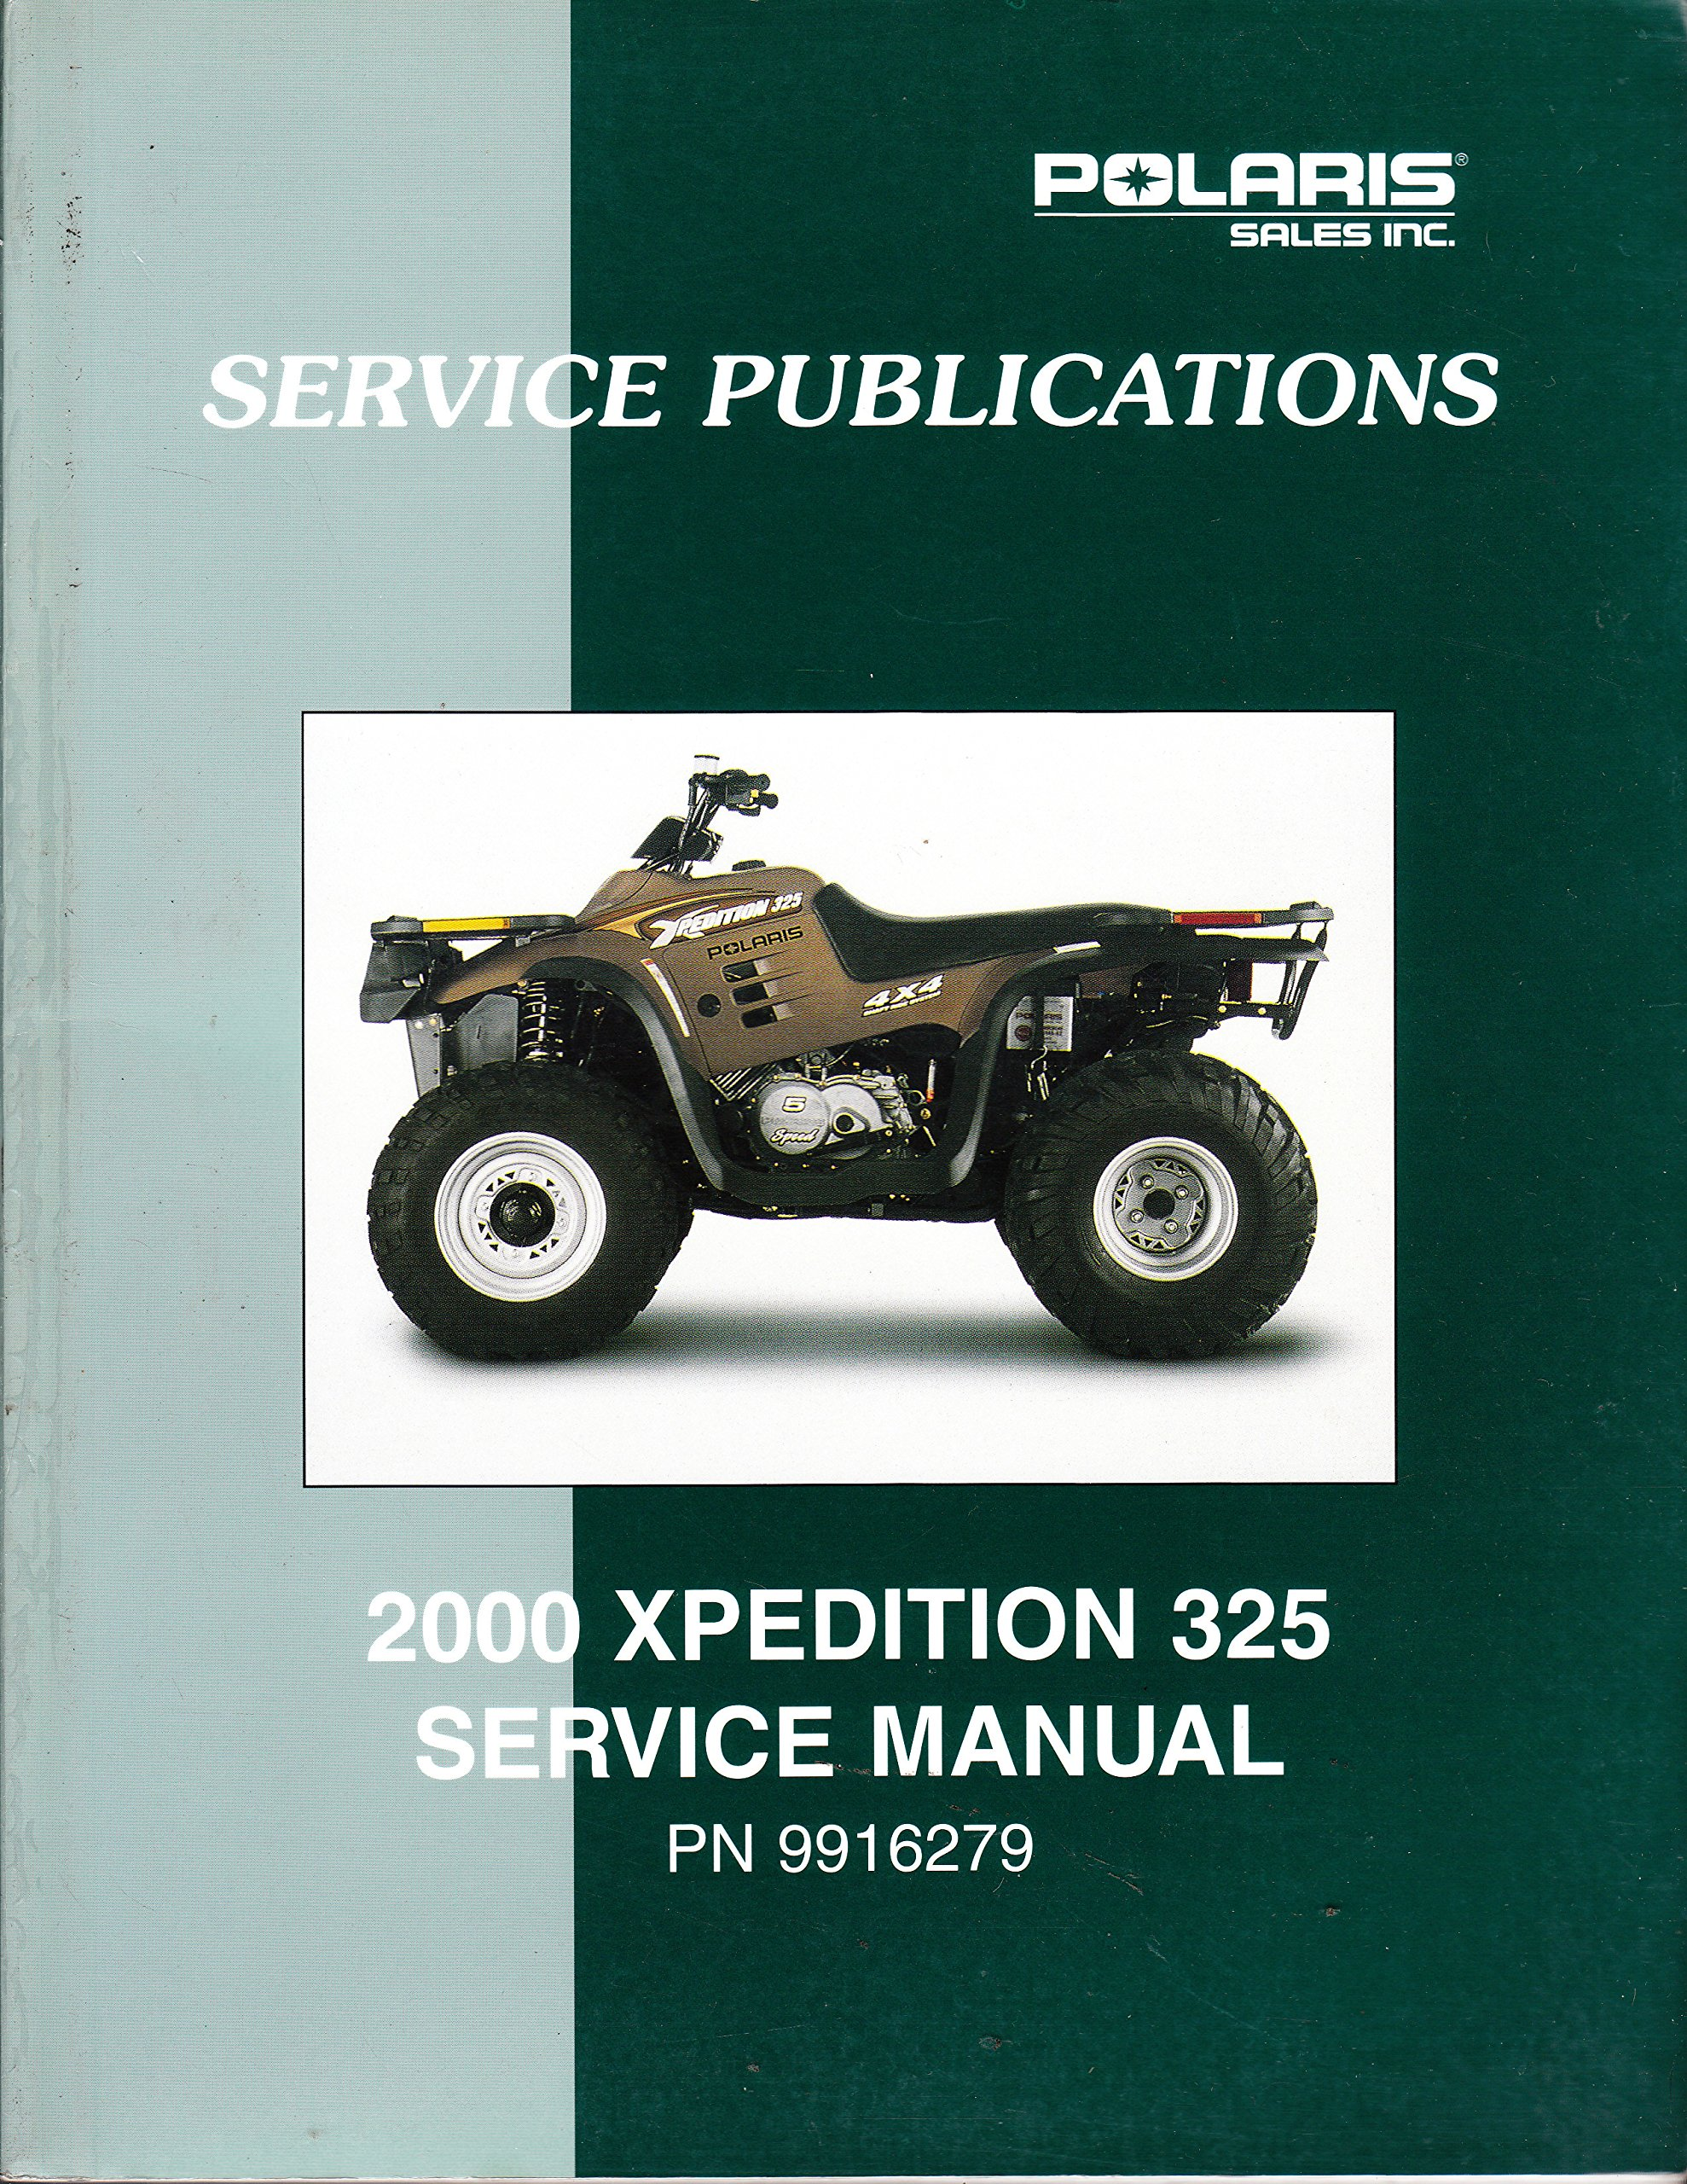 Polaris ATV 2000 Xpedition 325 Service Repair Manual #9916279: Polaris:  6122905641509: Amazon.com: Books